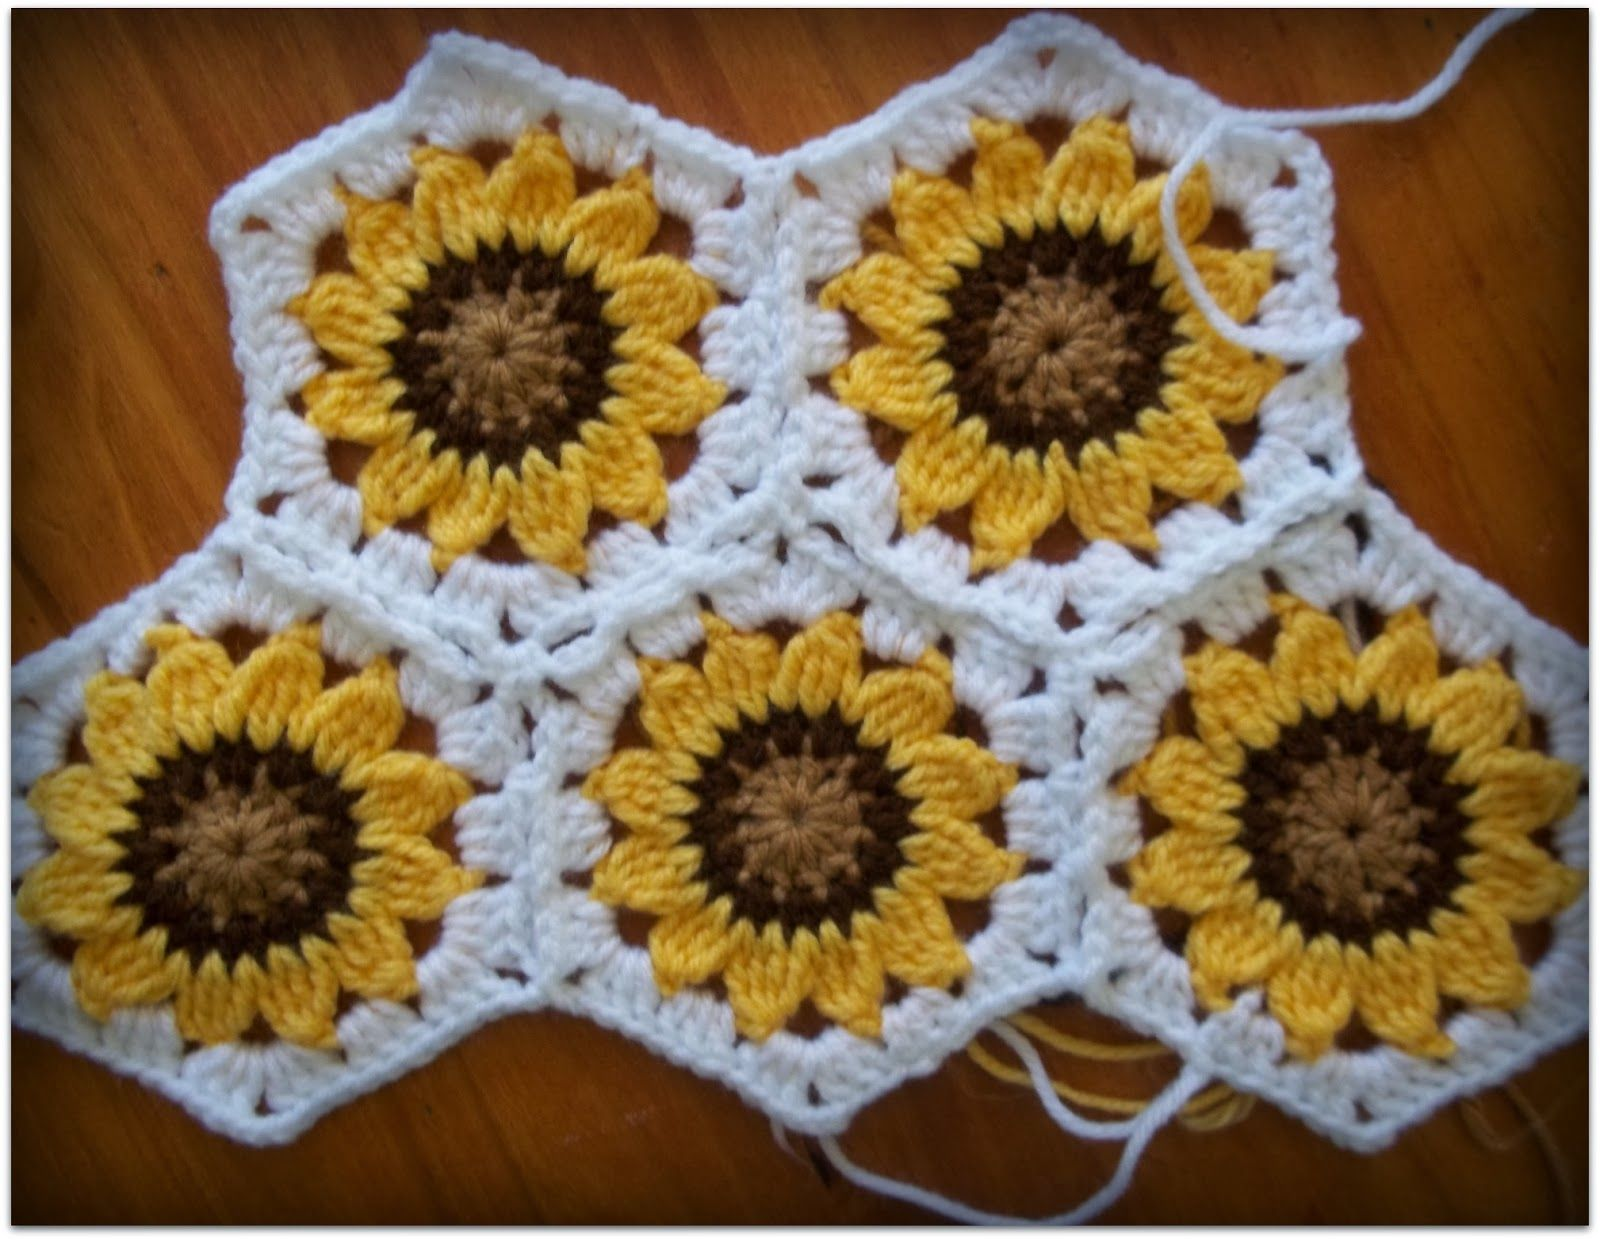 Sunflower hexagon crochet me a wardrobe pinterest blanket crochet mood sunflower blanket update and new wips bankloansurffo Image collections